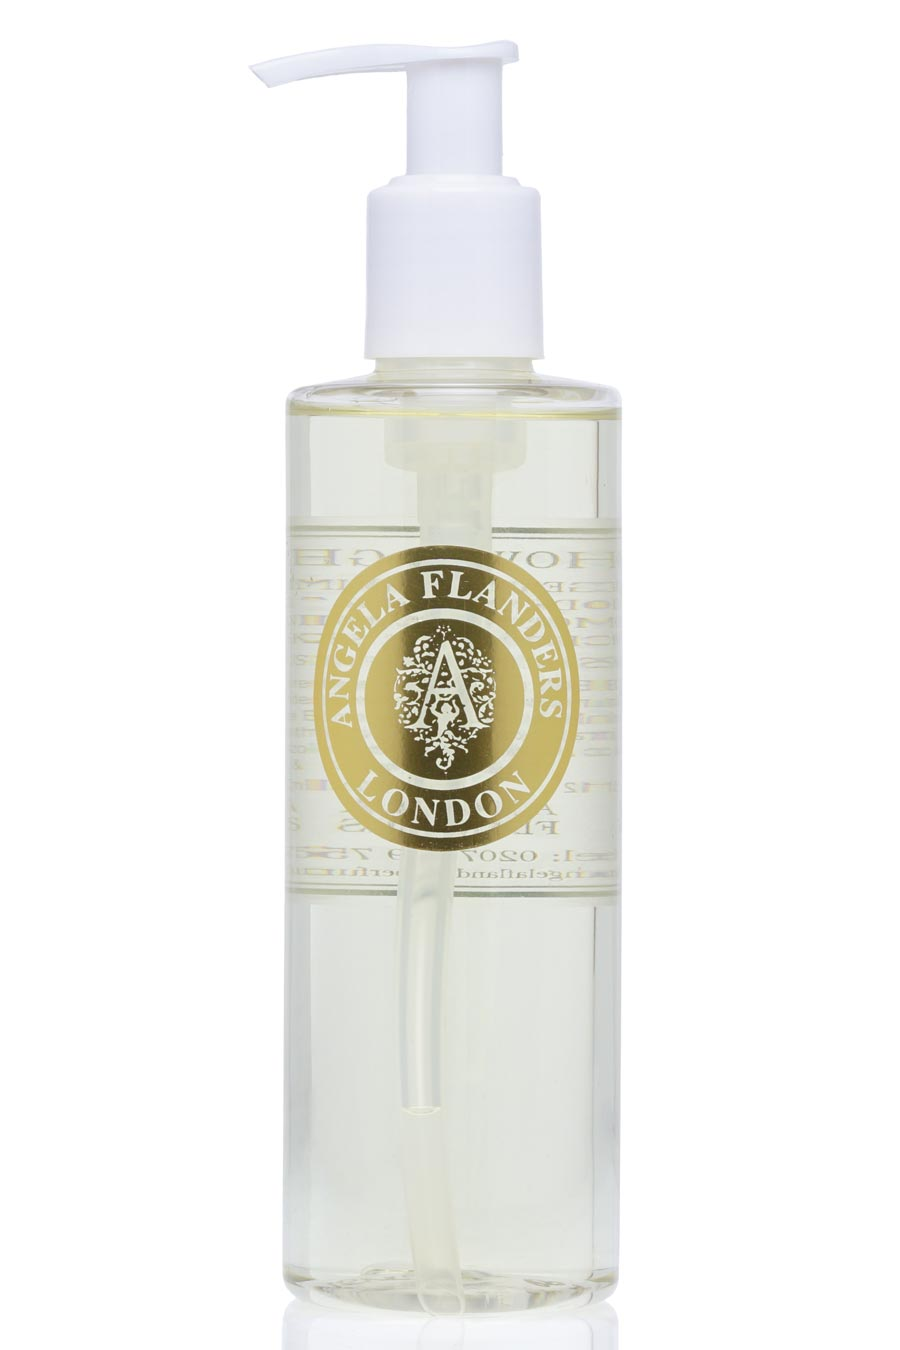 Angela Flanders White Flowers Shower Gel 250ml